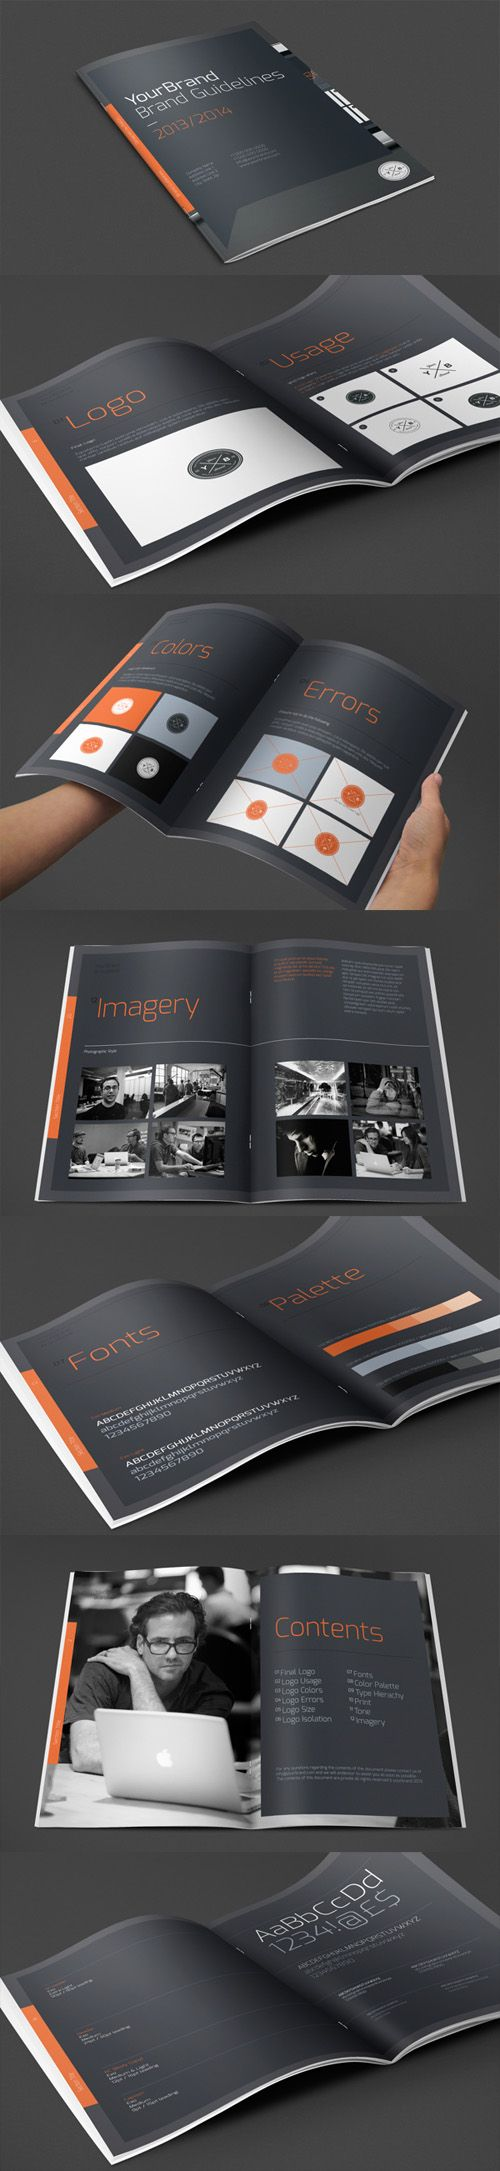 Brand Guidelines Brochure Design Professional business brochure designs